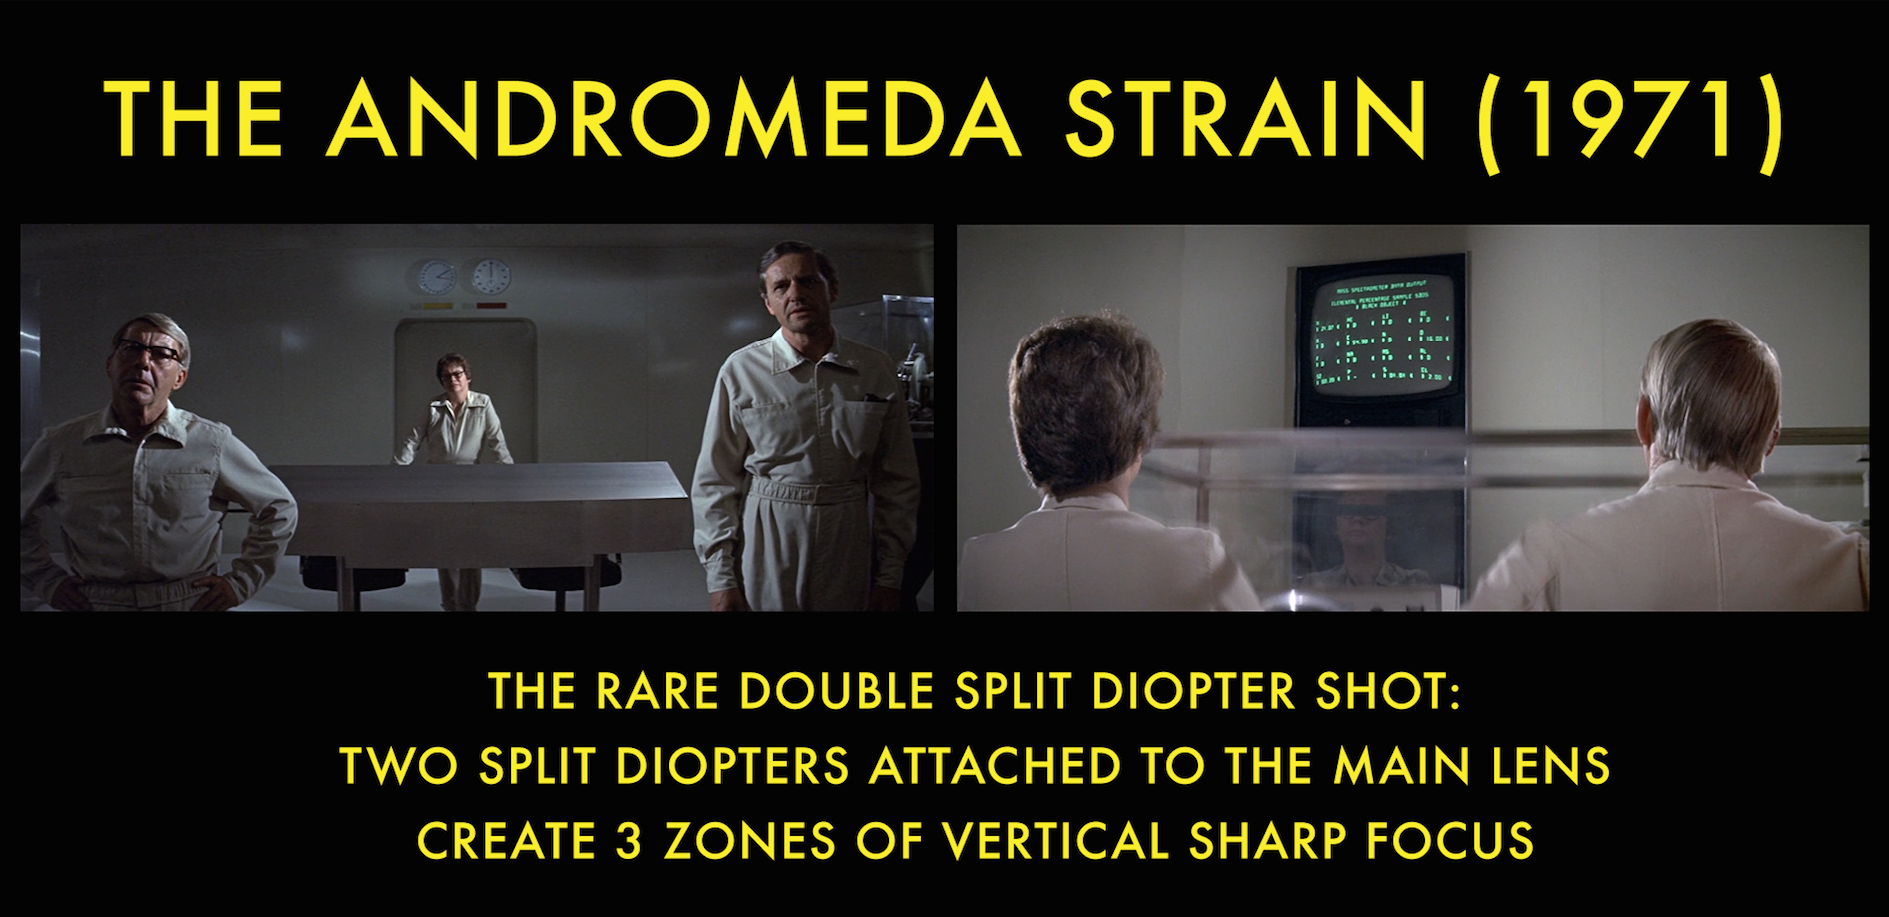 the andromeda strain Legal disclaimer this website is not affiliated with, endorsed by or sponsored by netflix in any way this site does not represent netflix or netflix in australia.